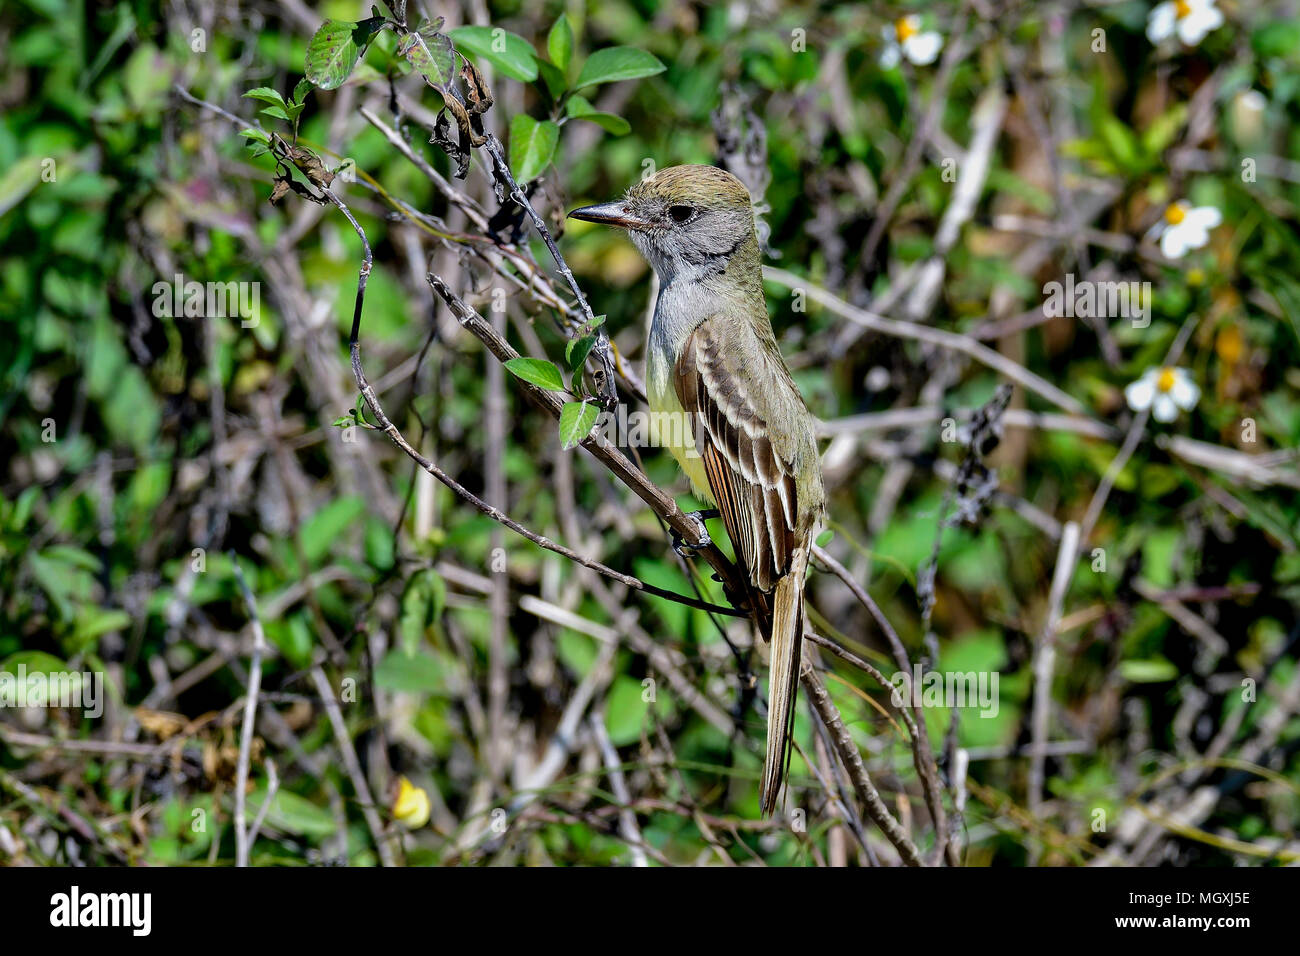 Great Crested Flycatcher - Stock Image